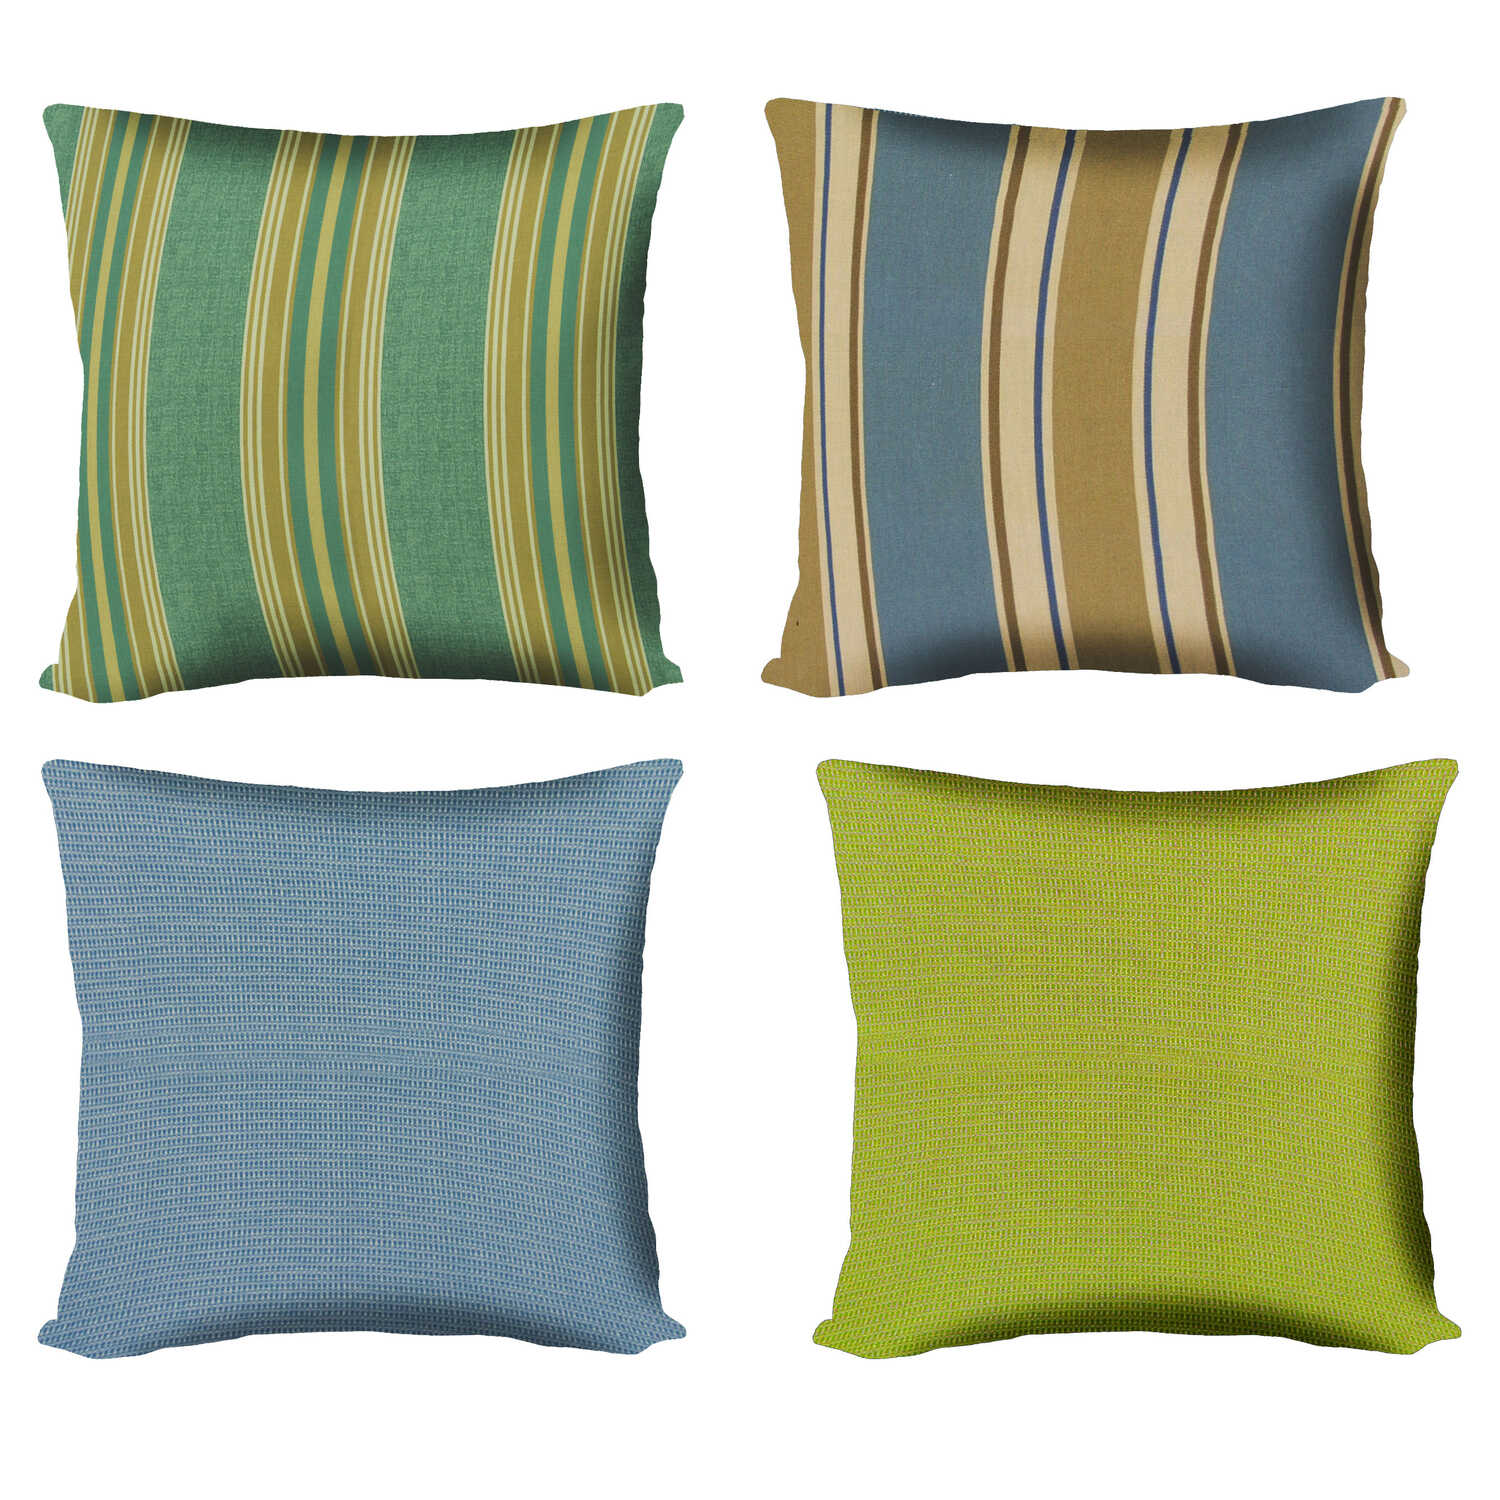 Northcape  Assorted  Polyester  Throw Pillow  15 in. H x 15 in. W x 6 in. L